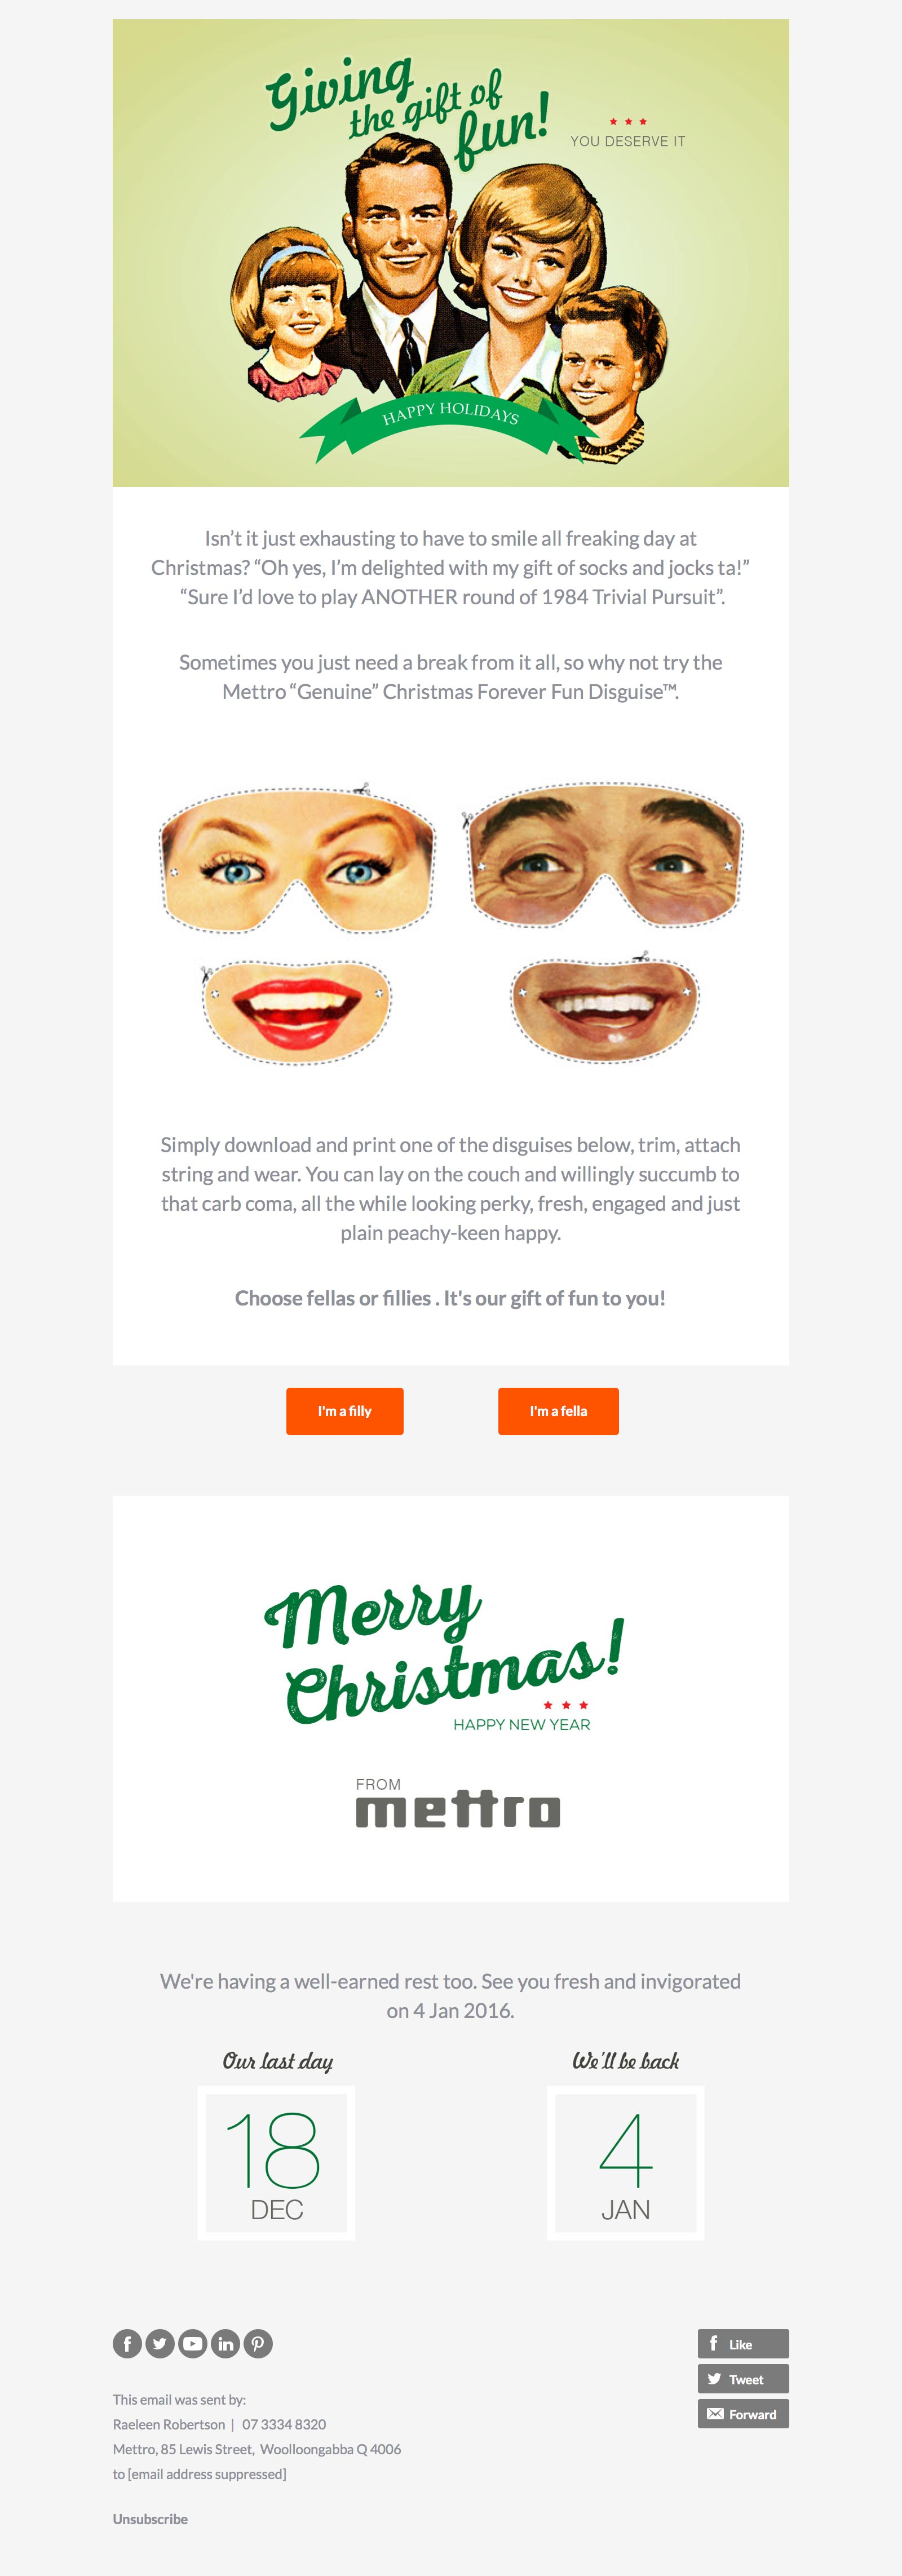 mettro-christmas-email